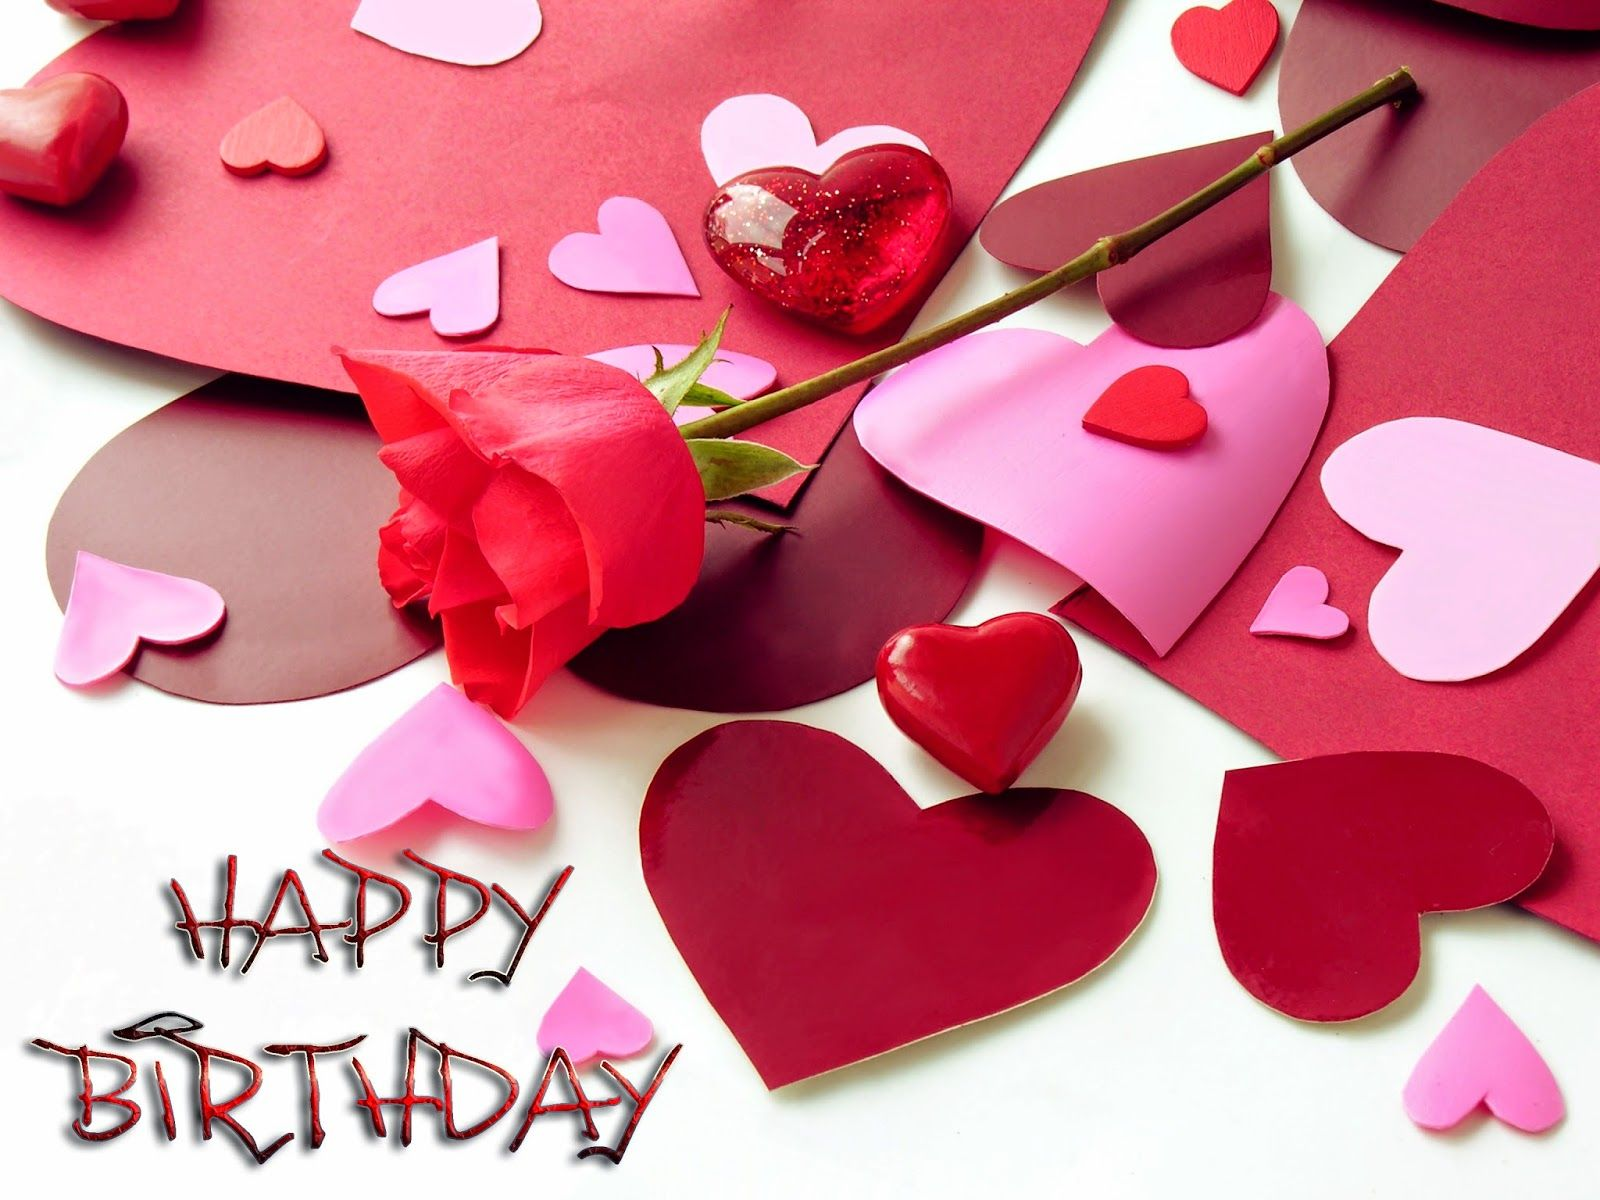 Birthday Wishes For Boyfriend – Happy Birthday Quotes And Wishes